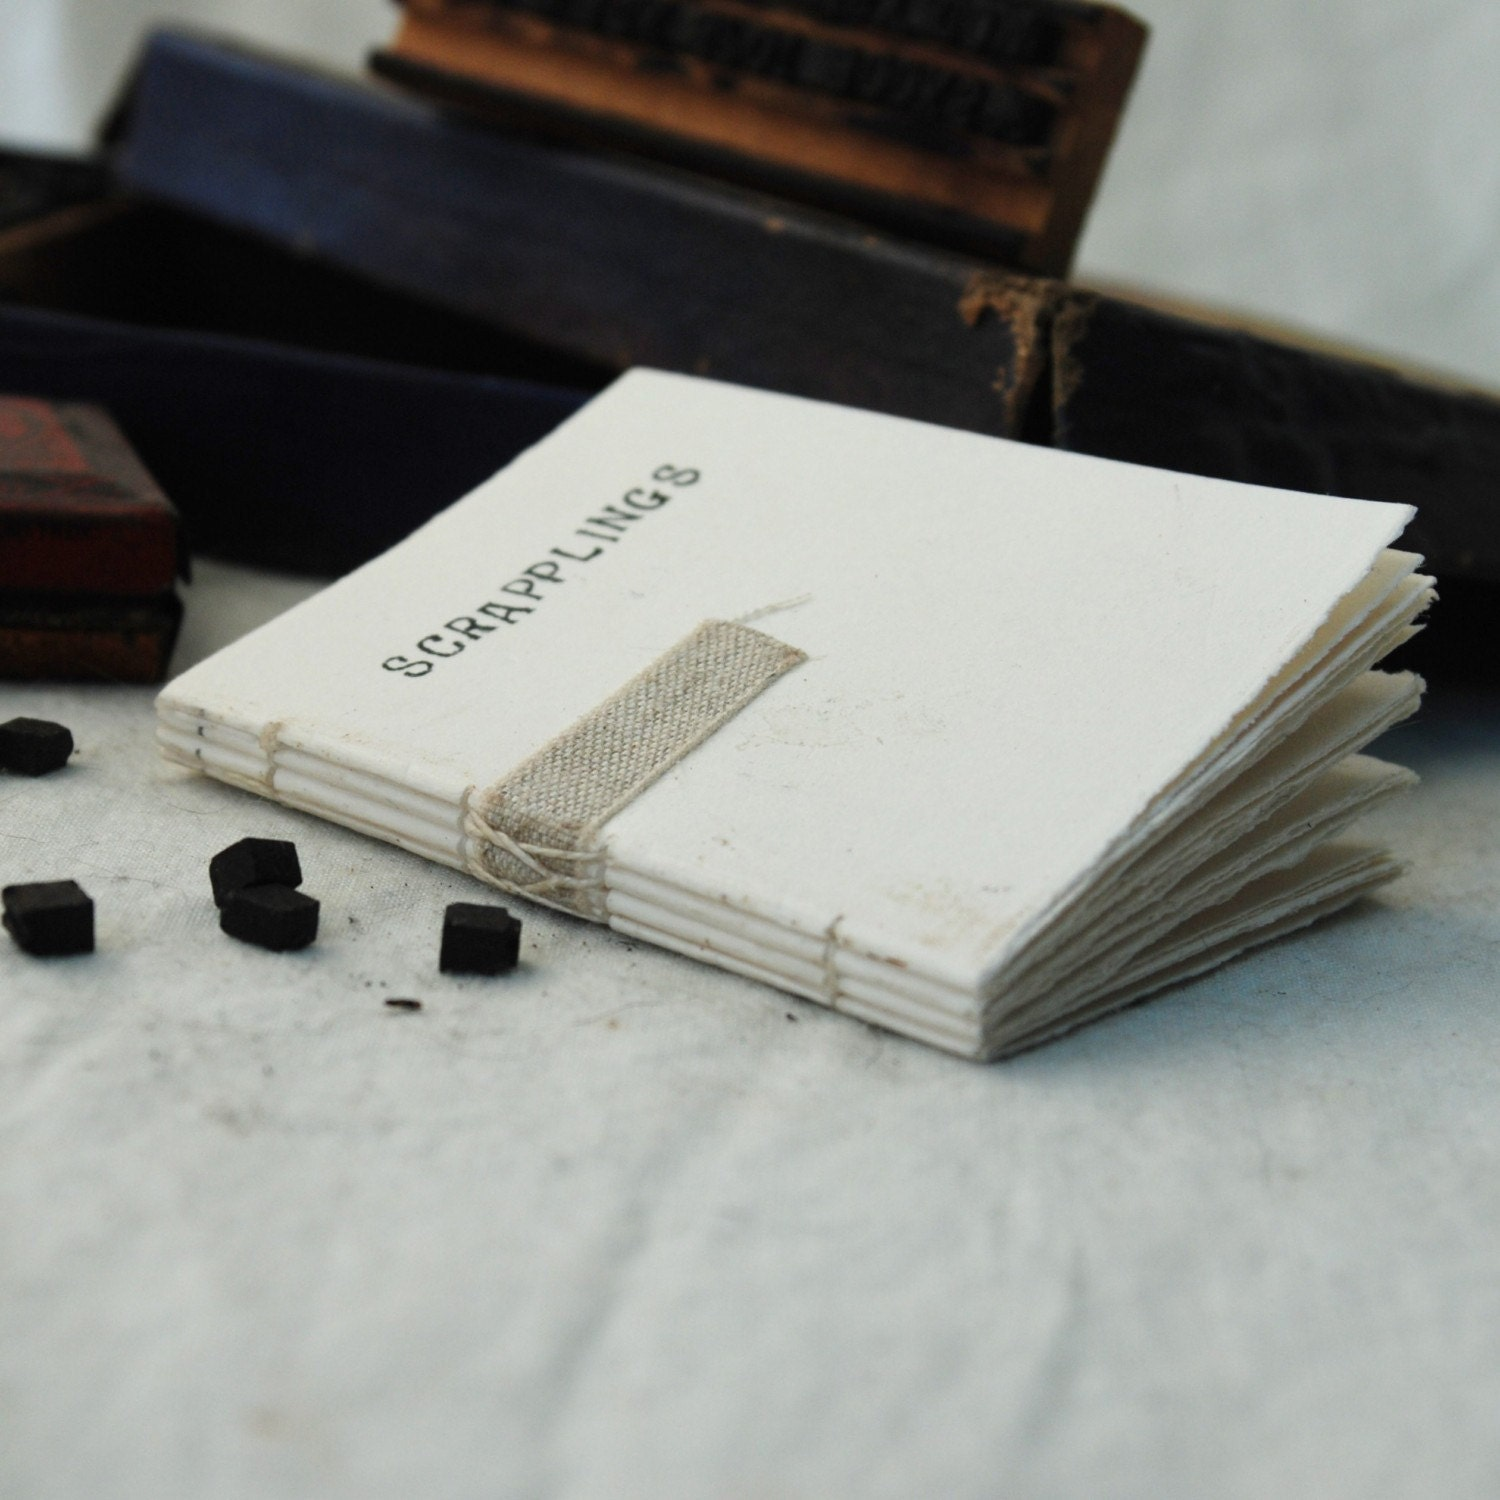 Scrapplings - small book for notes